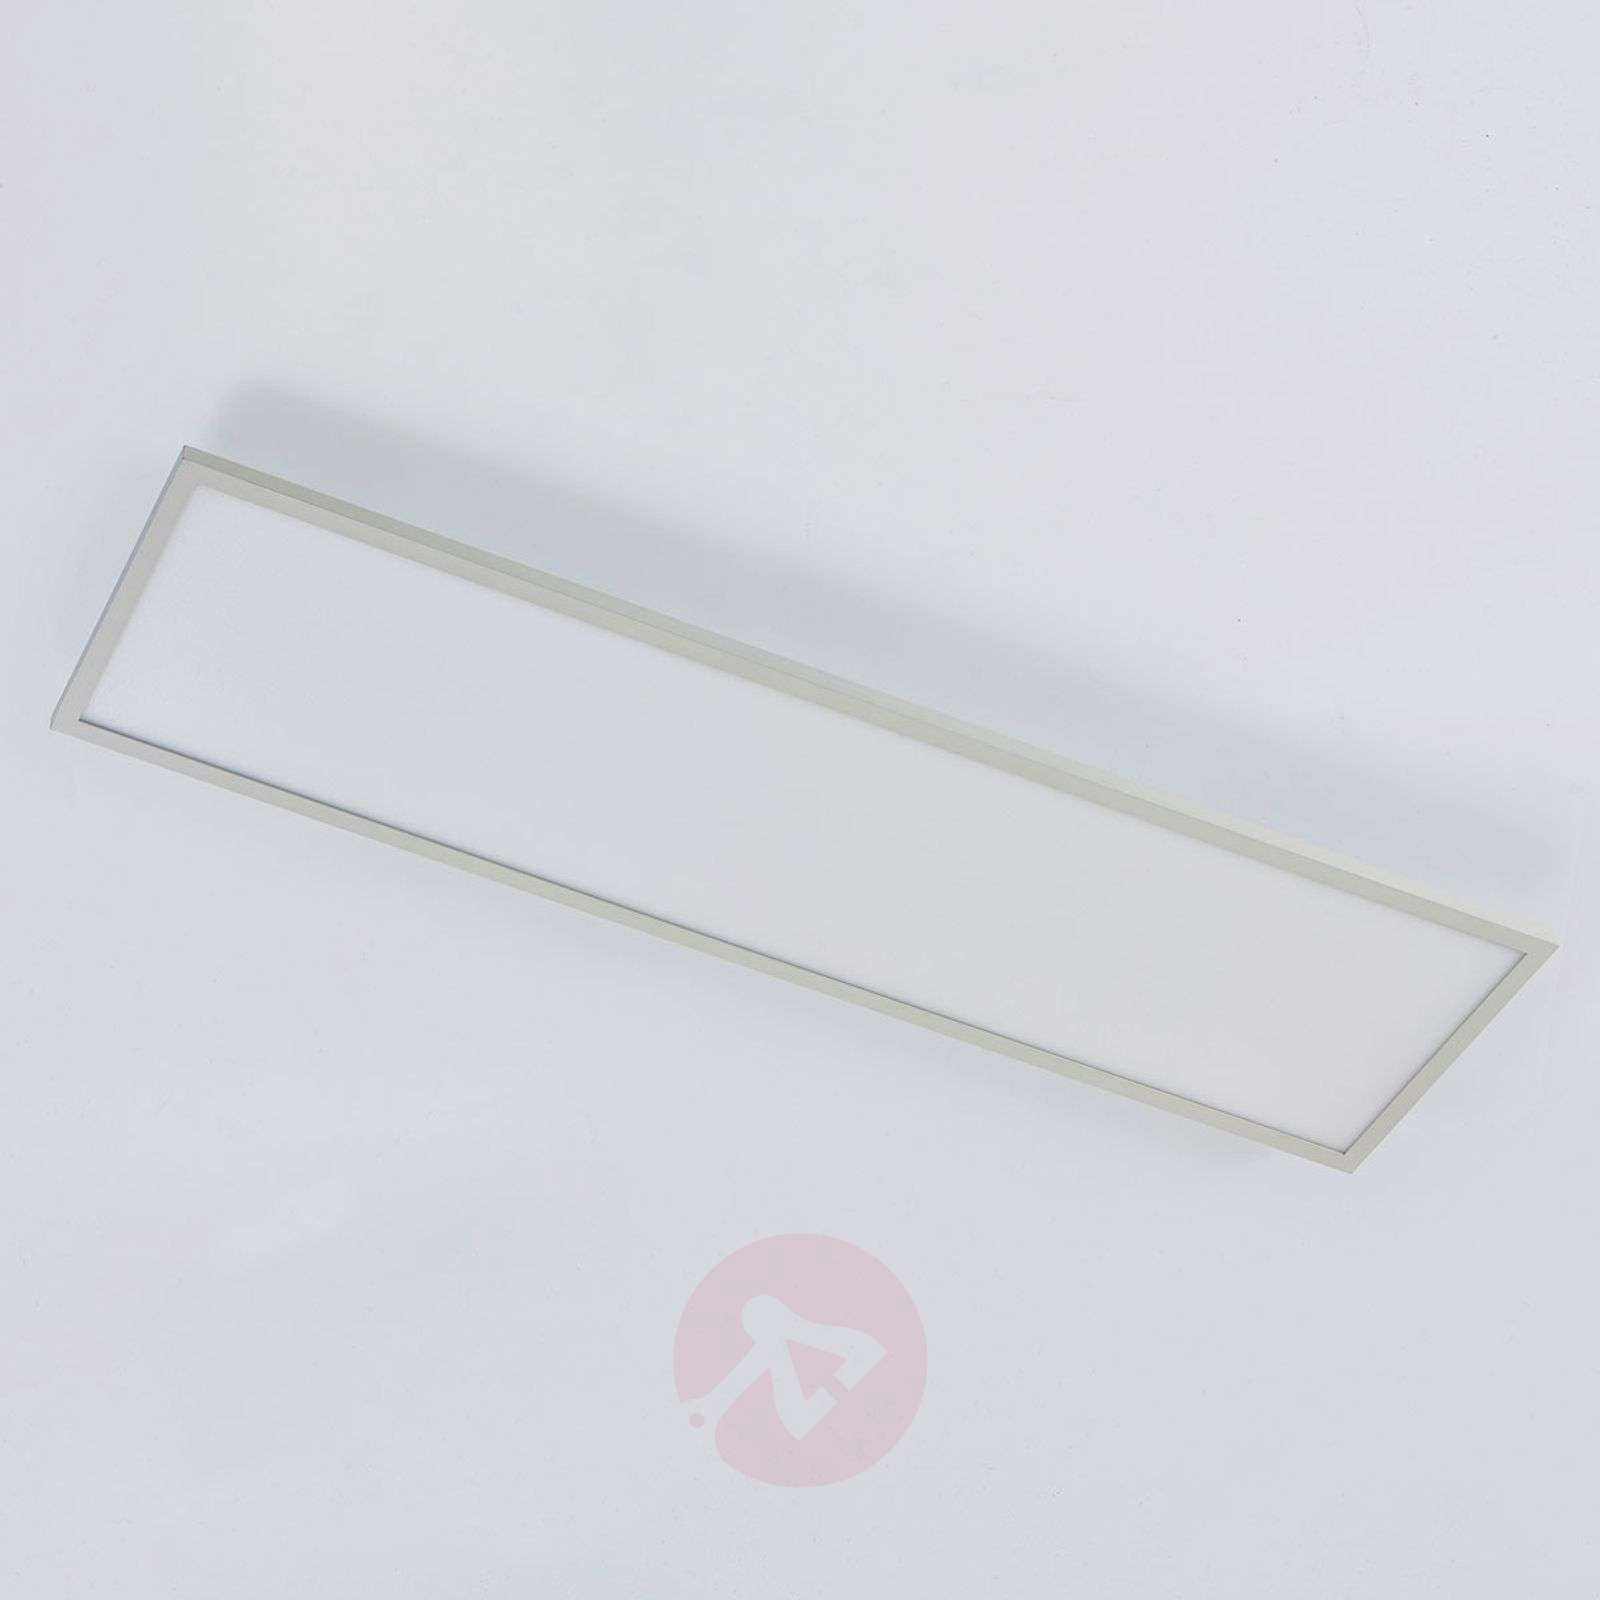 Philia LED ceiling light 3,000K 6,000K, 119 cm-9621215-02